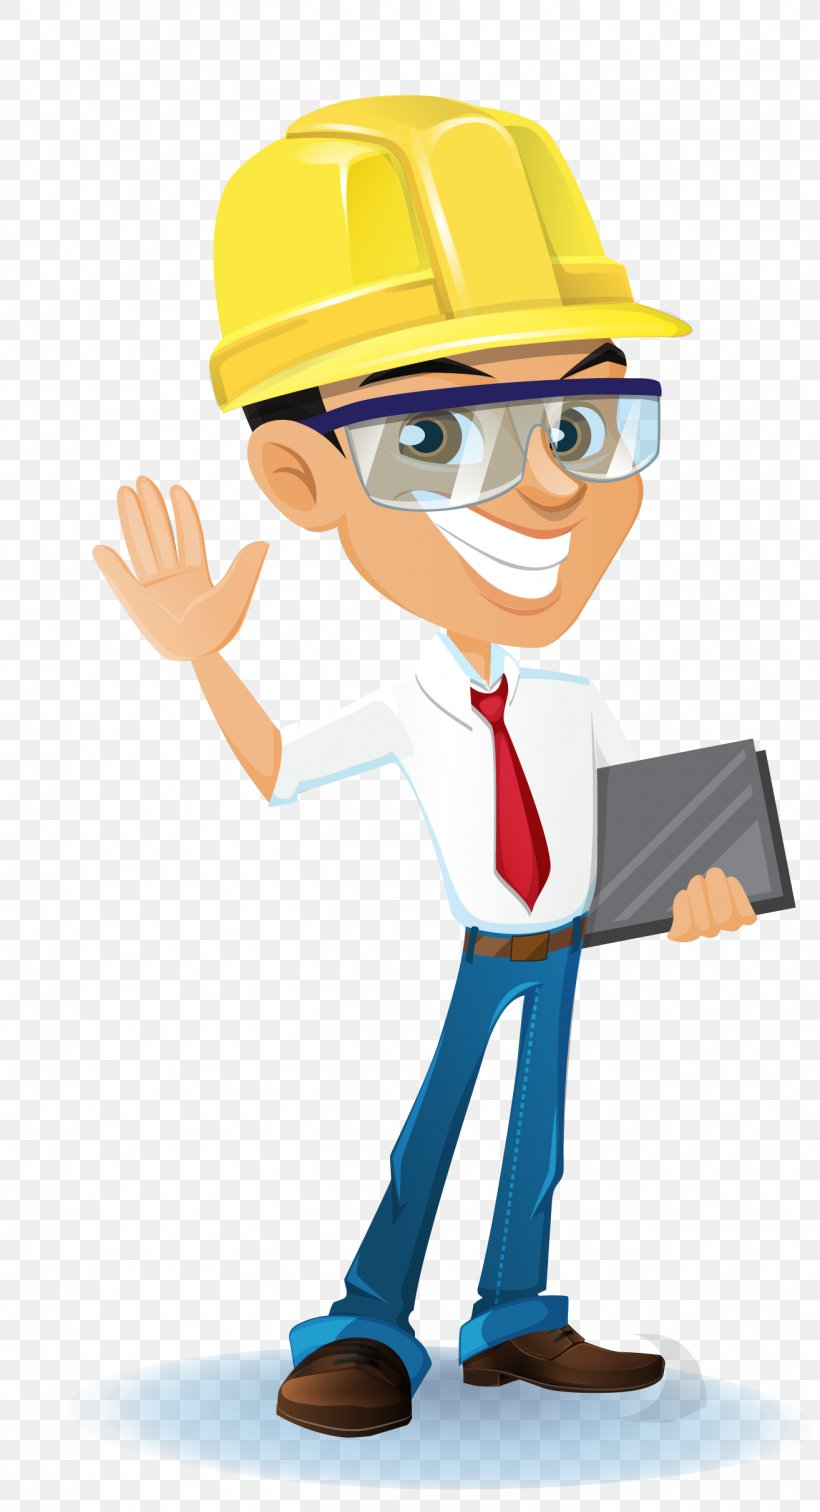 Architectural Engineering Clip Art, PNG, 1314x2423px, Engineer, Architectural Engineering, Boy, Business, Cartoon Download Free